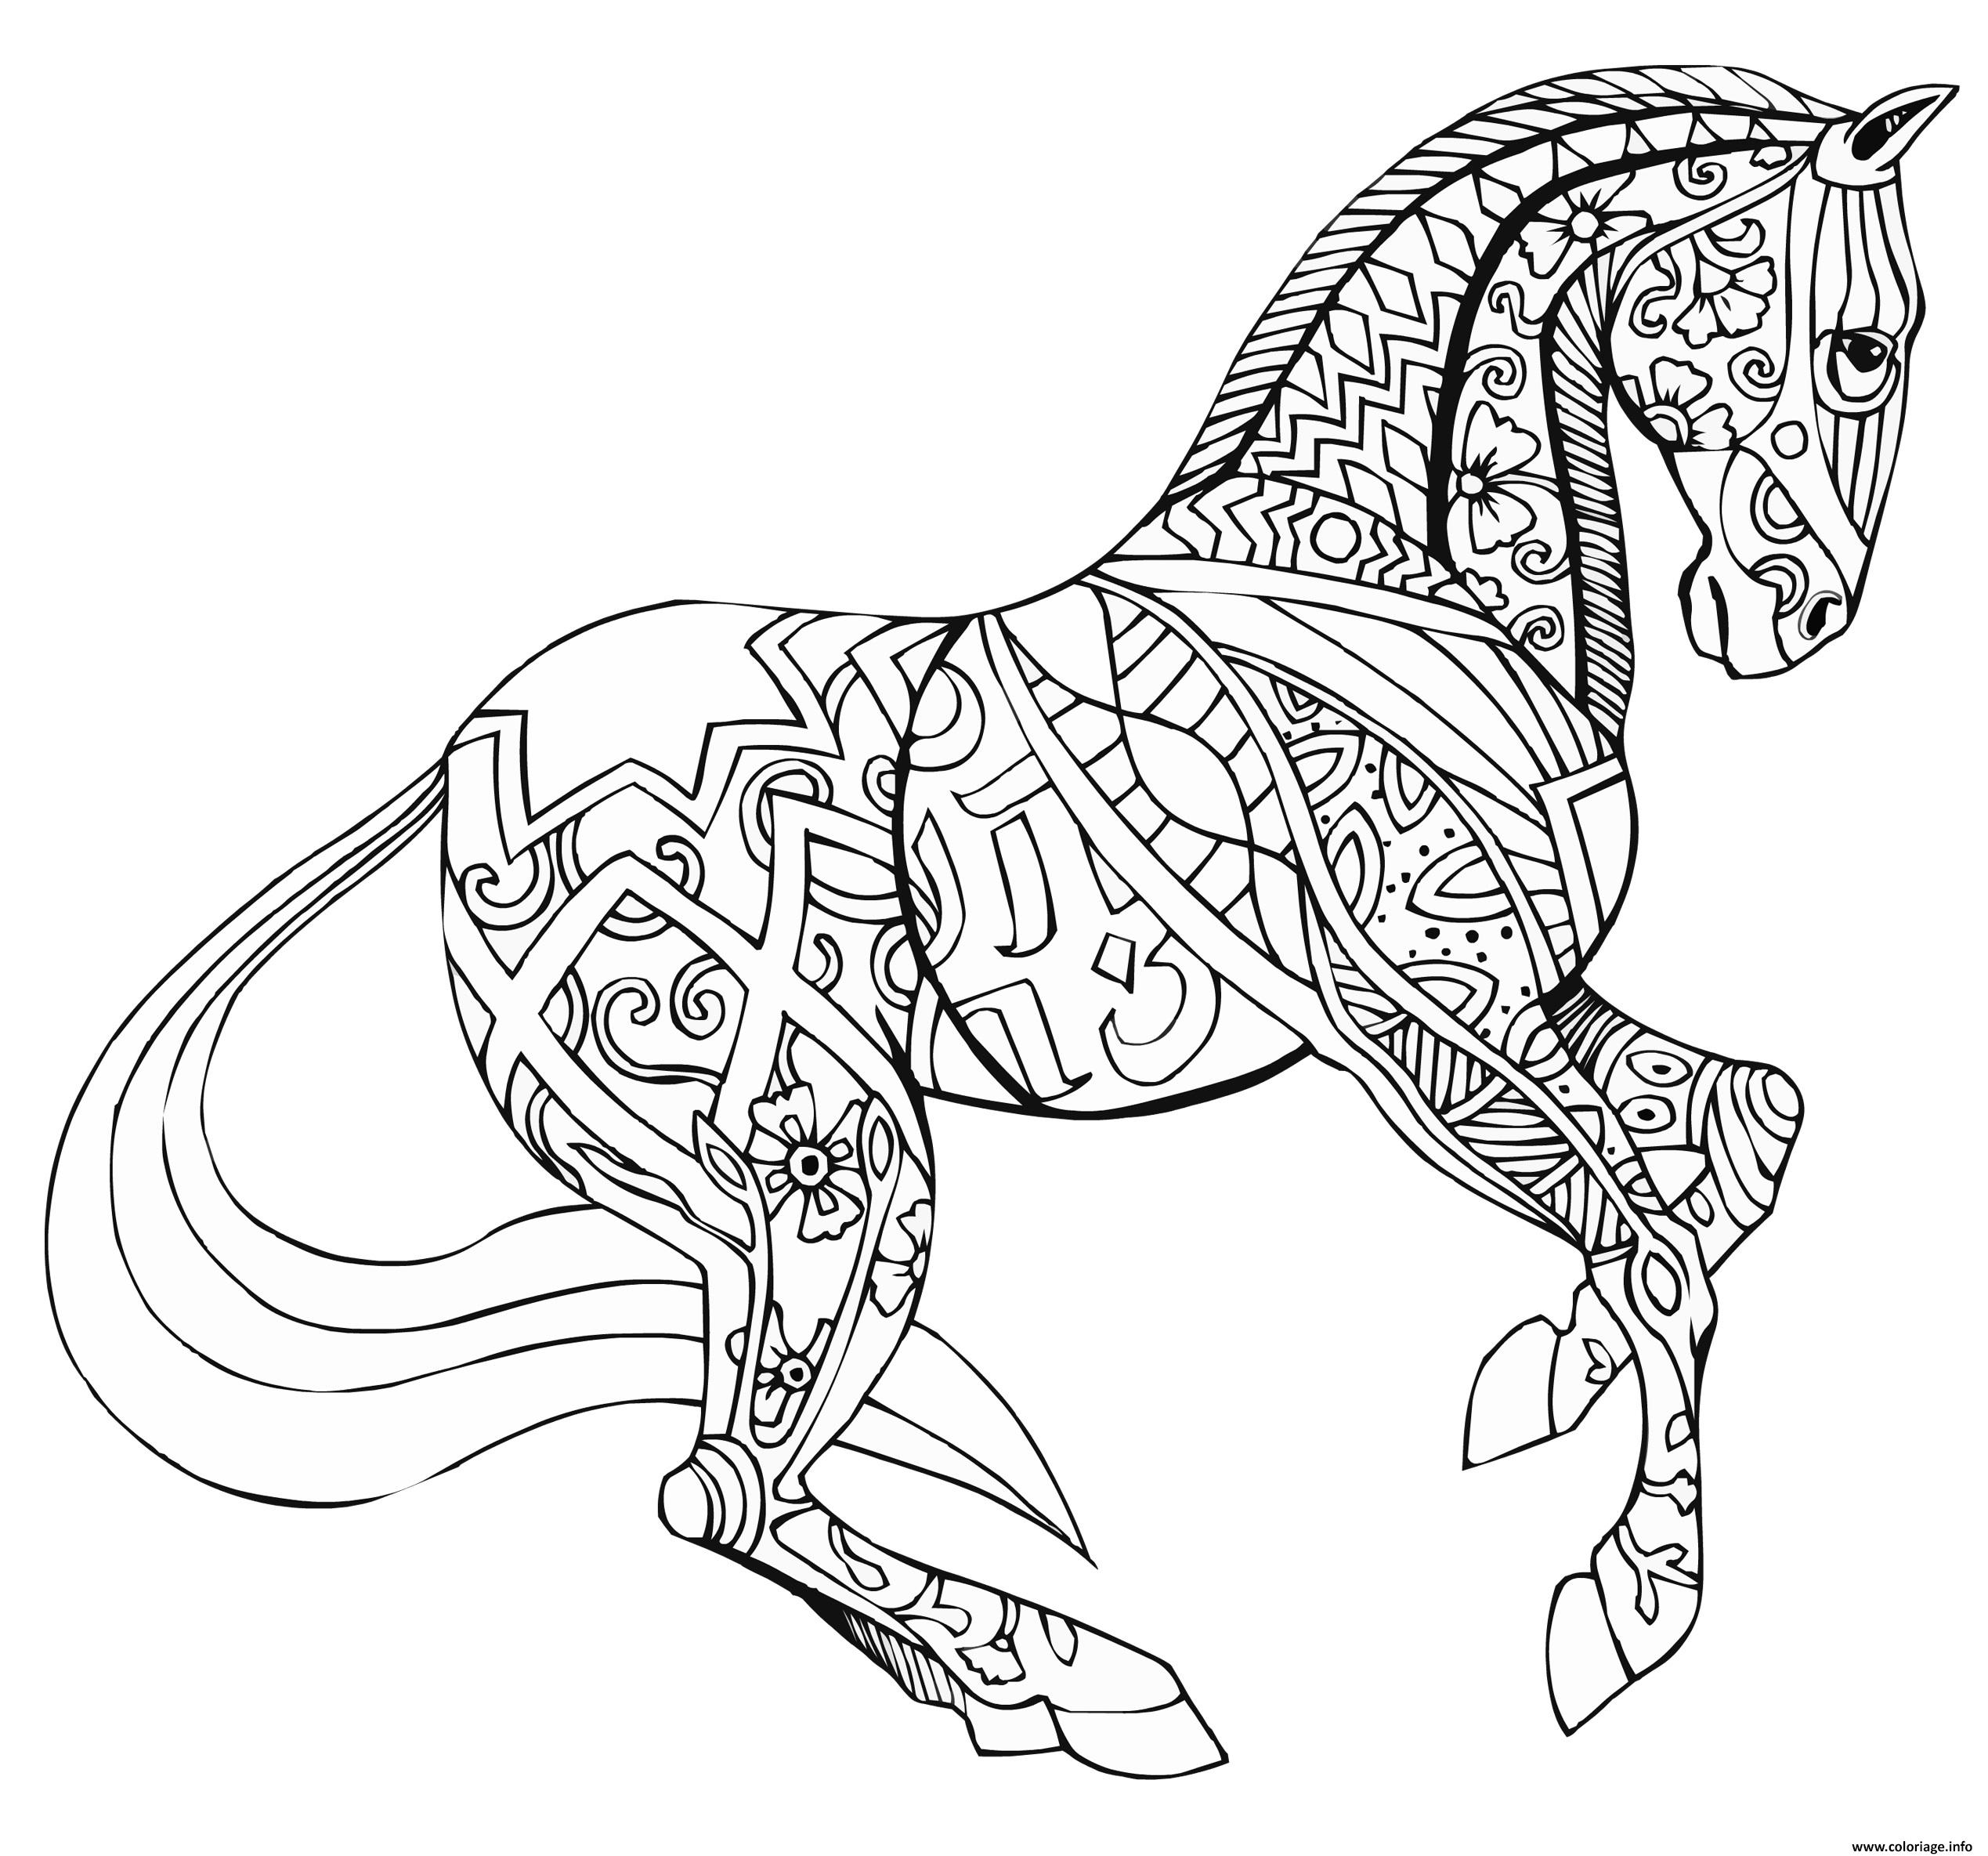 Coloriage adulte cheval par selah works dessin - Chevaux a colorier ...